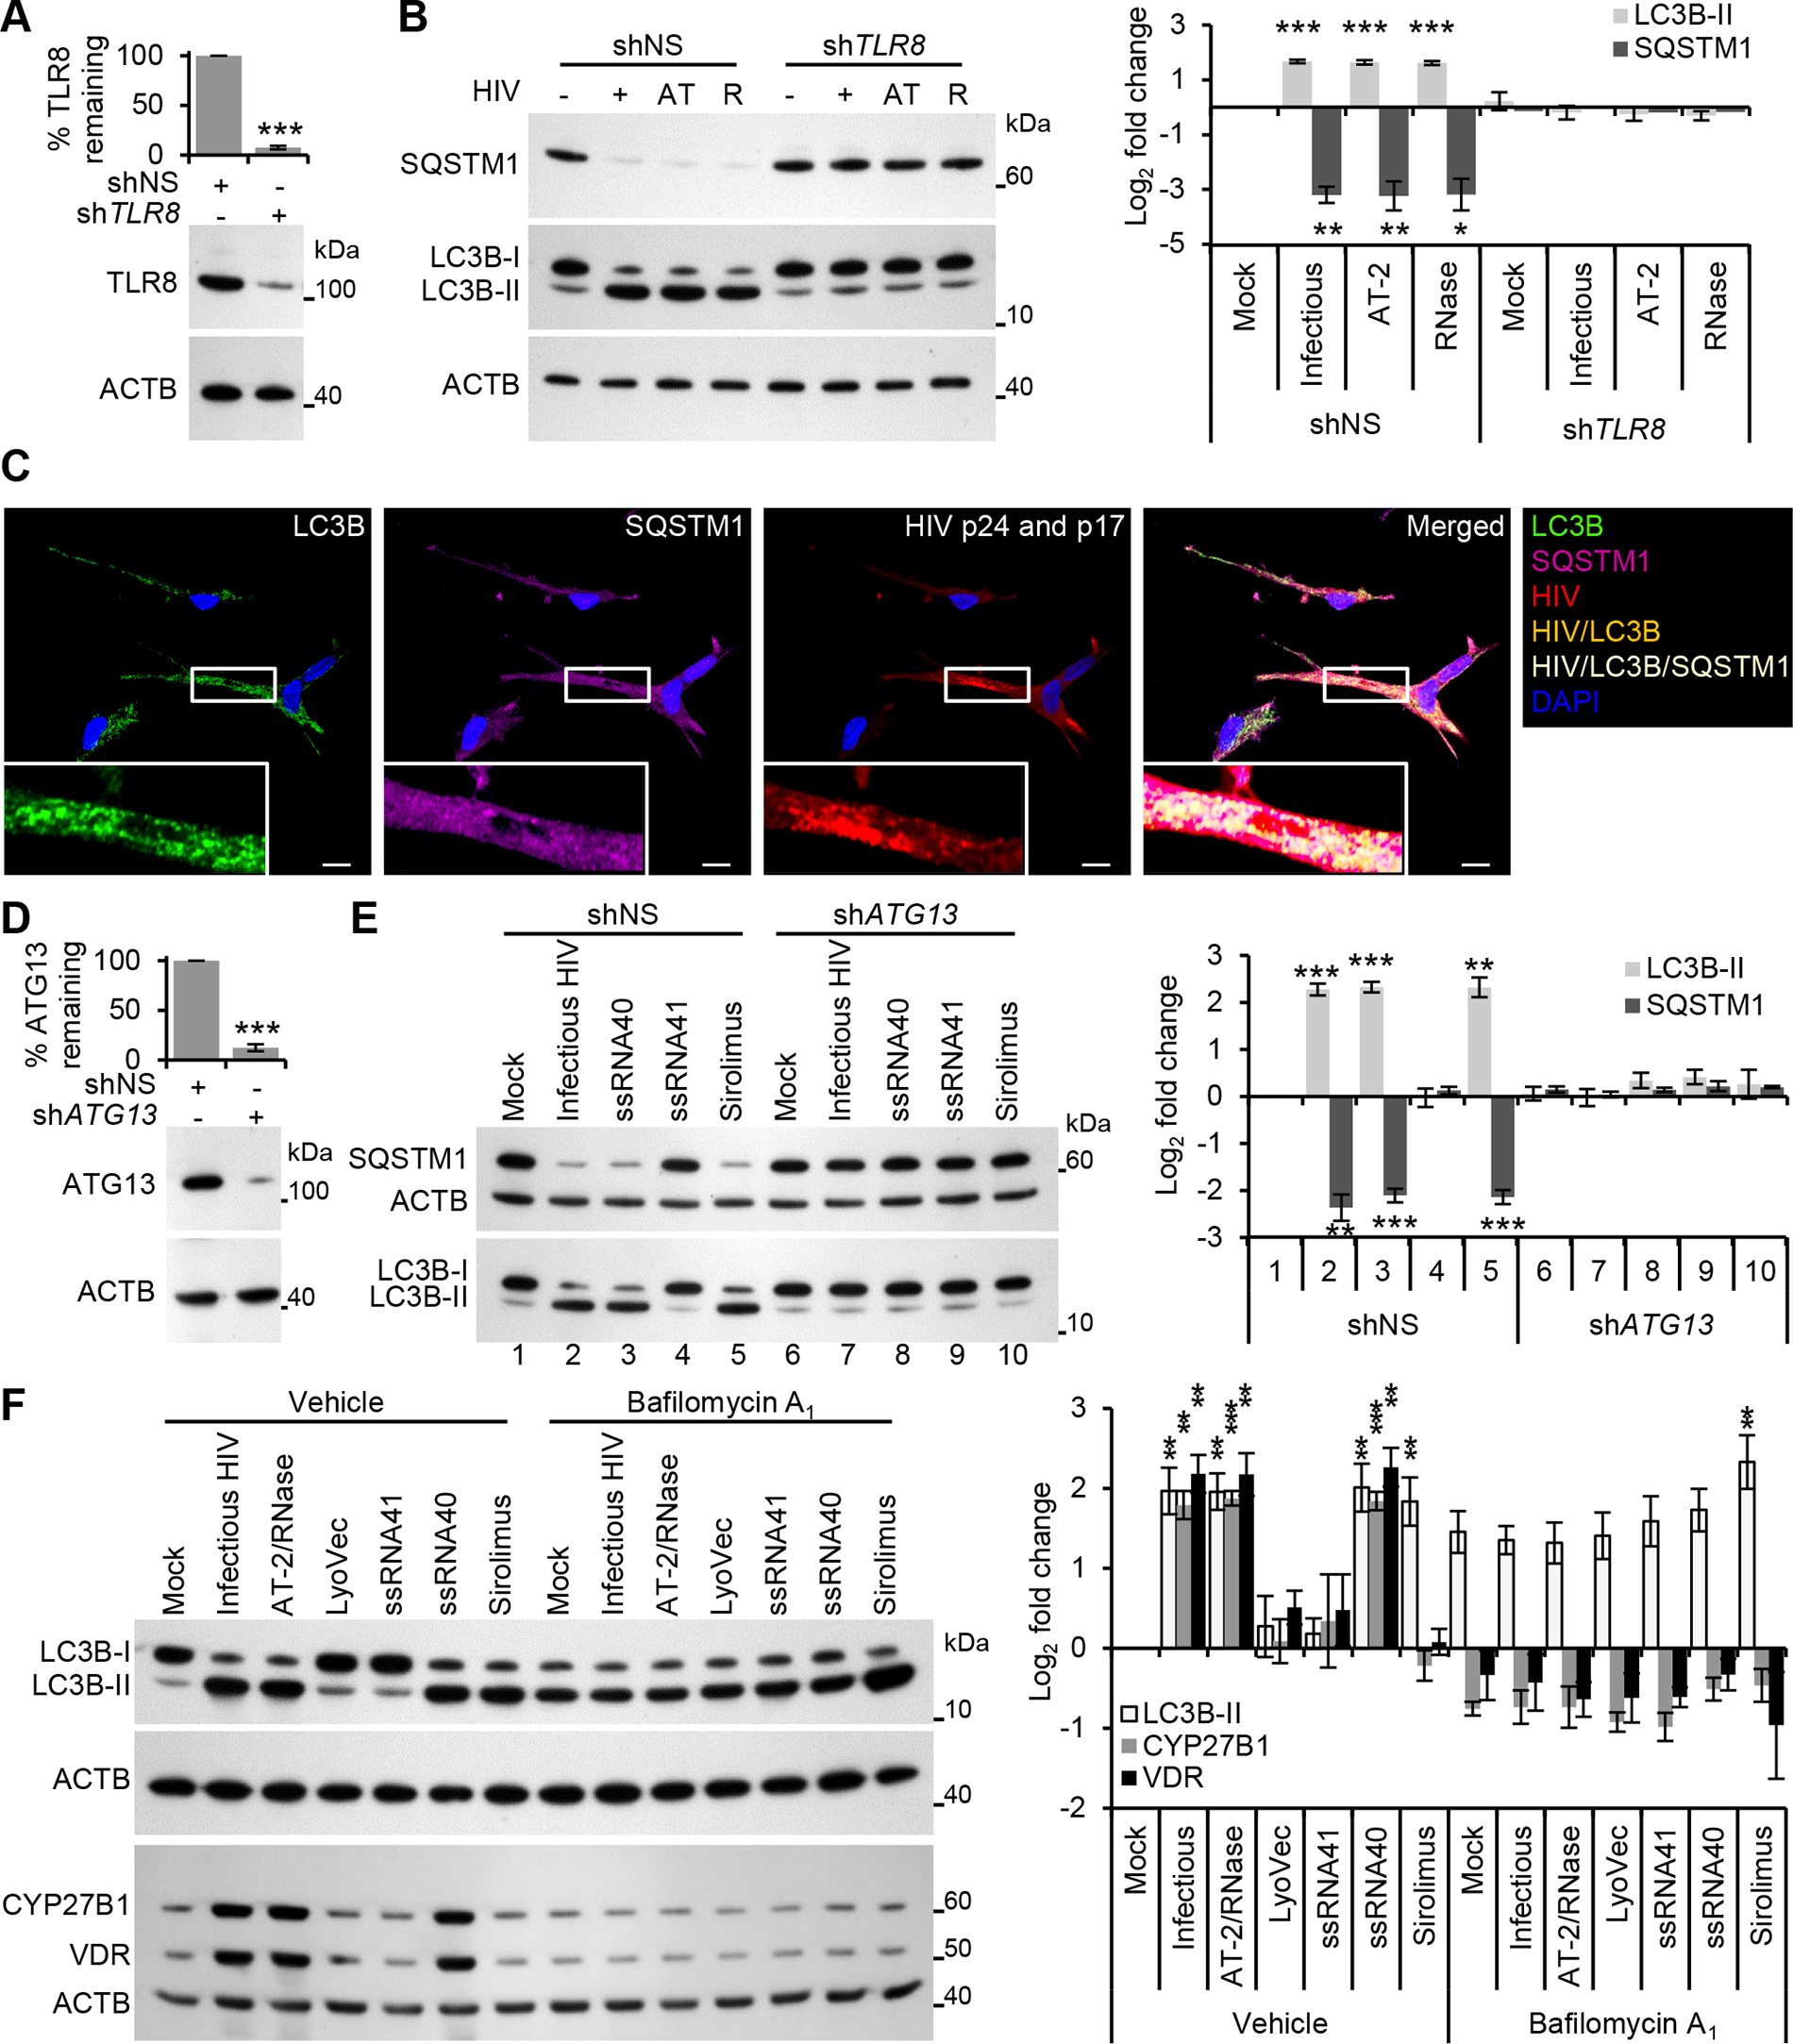 HIV induces autophagy in human macrophages through TLR8.